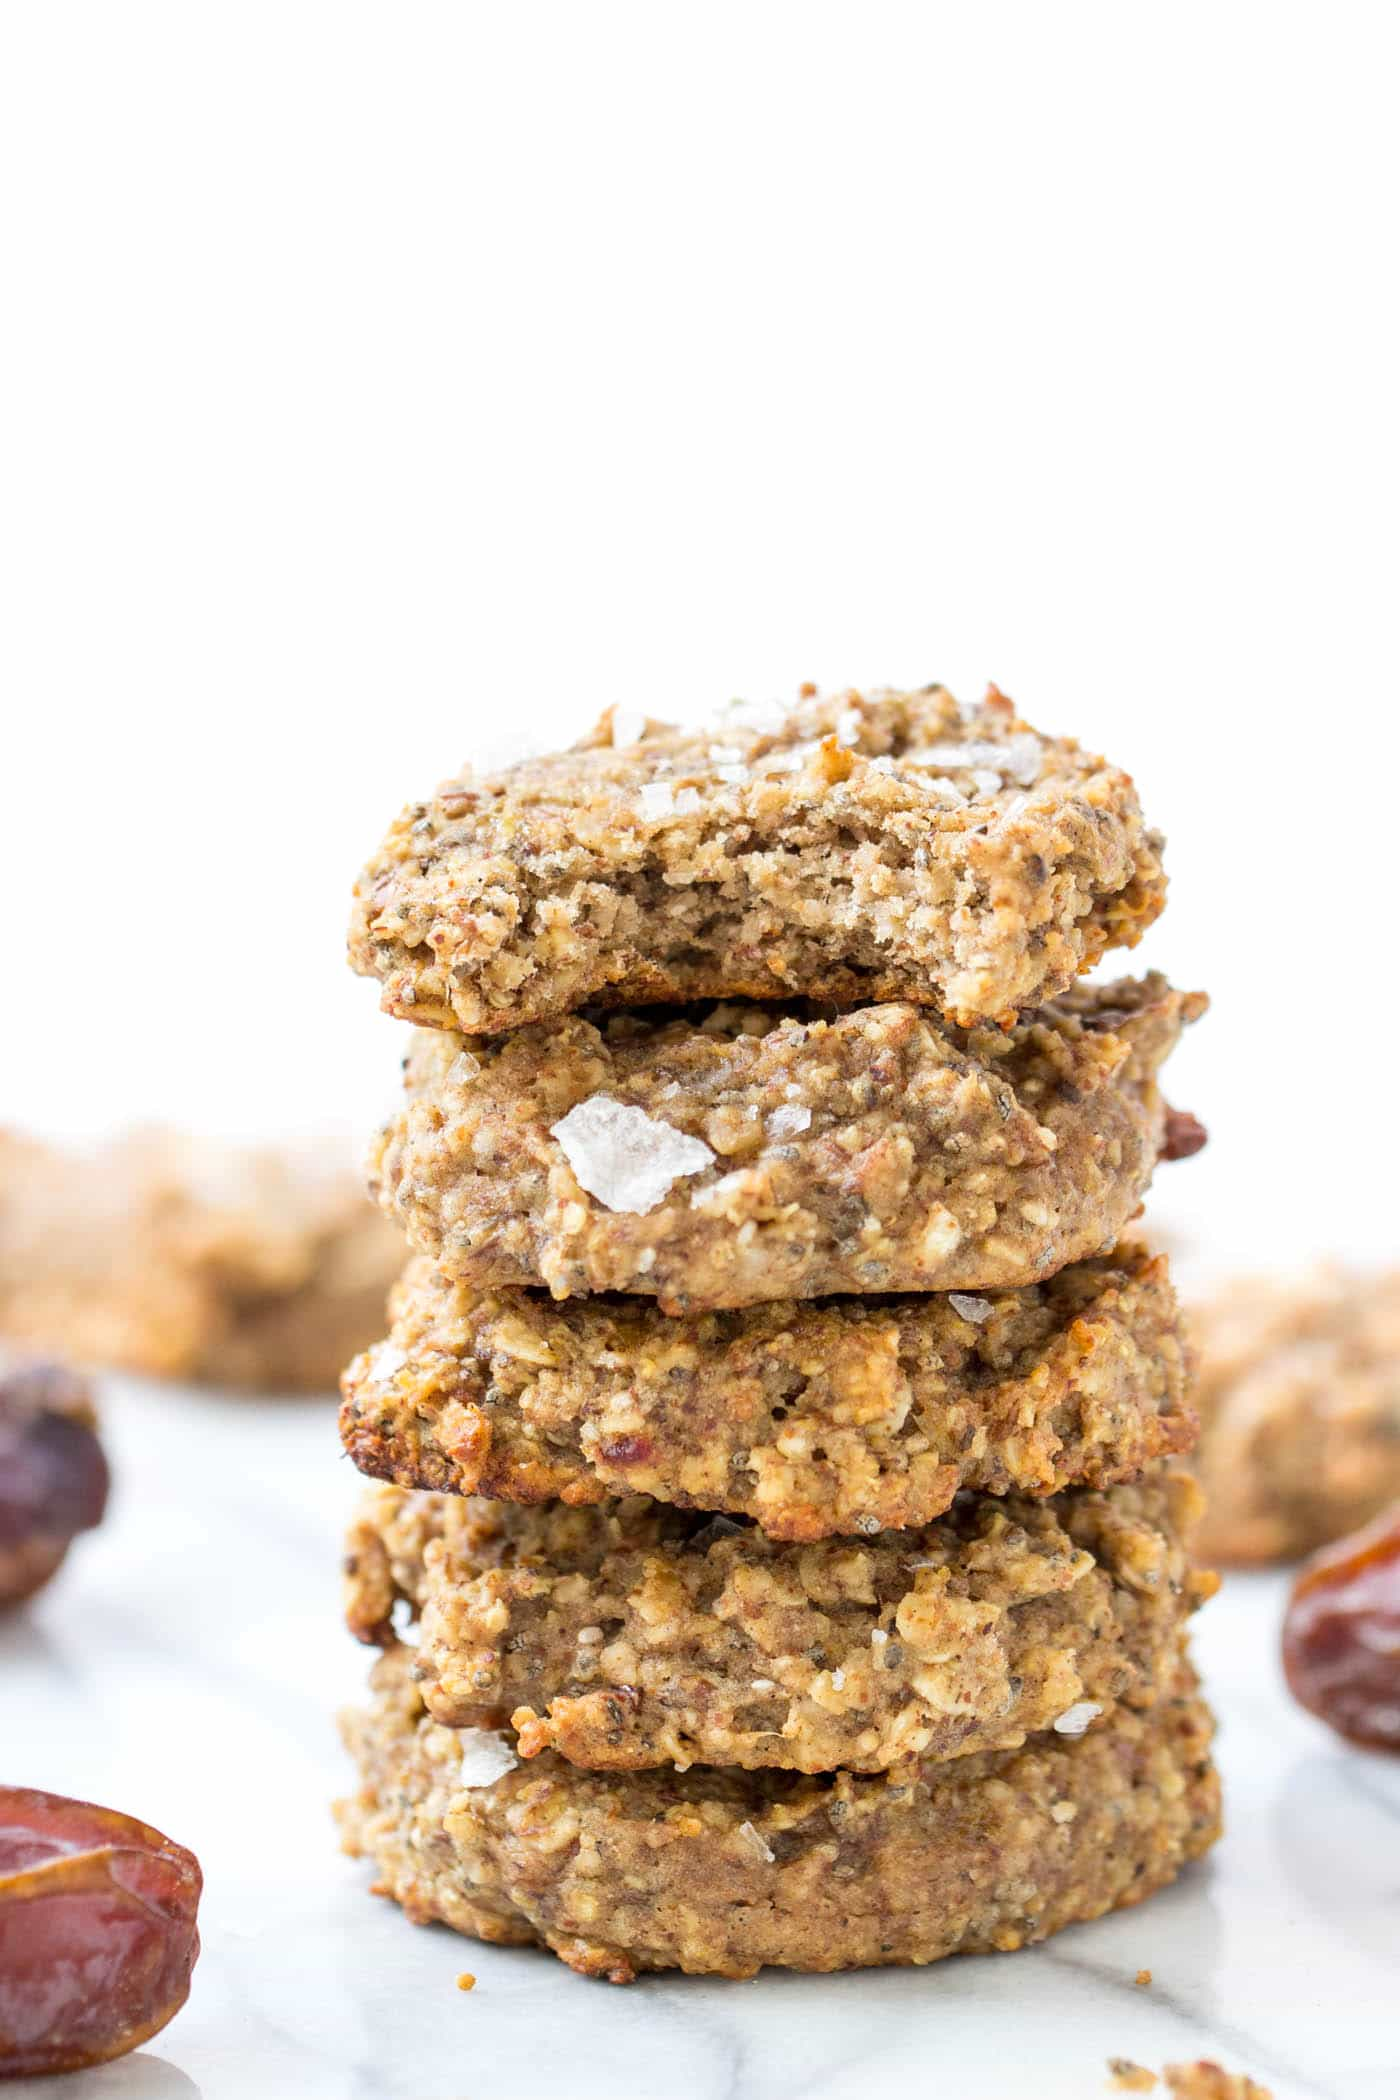 SEA SALT + DATE BREAKFAST COOKIES...with quinoa, oats, banana, almond butter + more! Naturally gluten-free, dairy-free, refined sugar-free AND vegan!